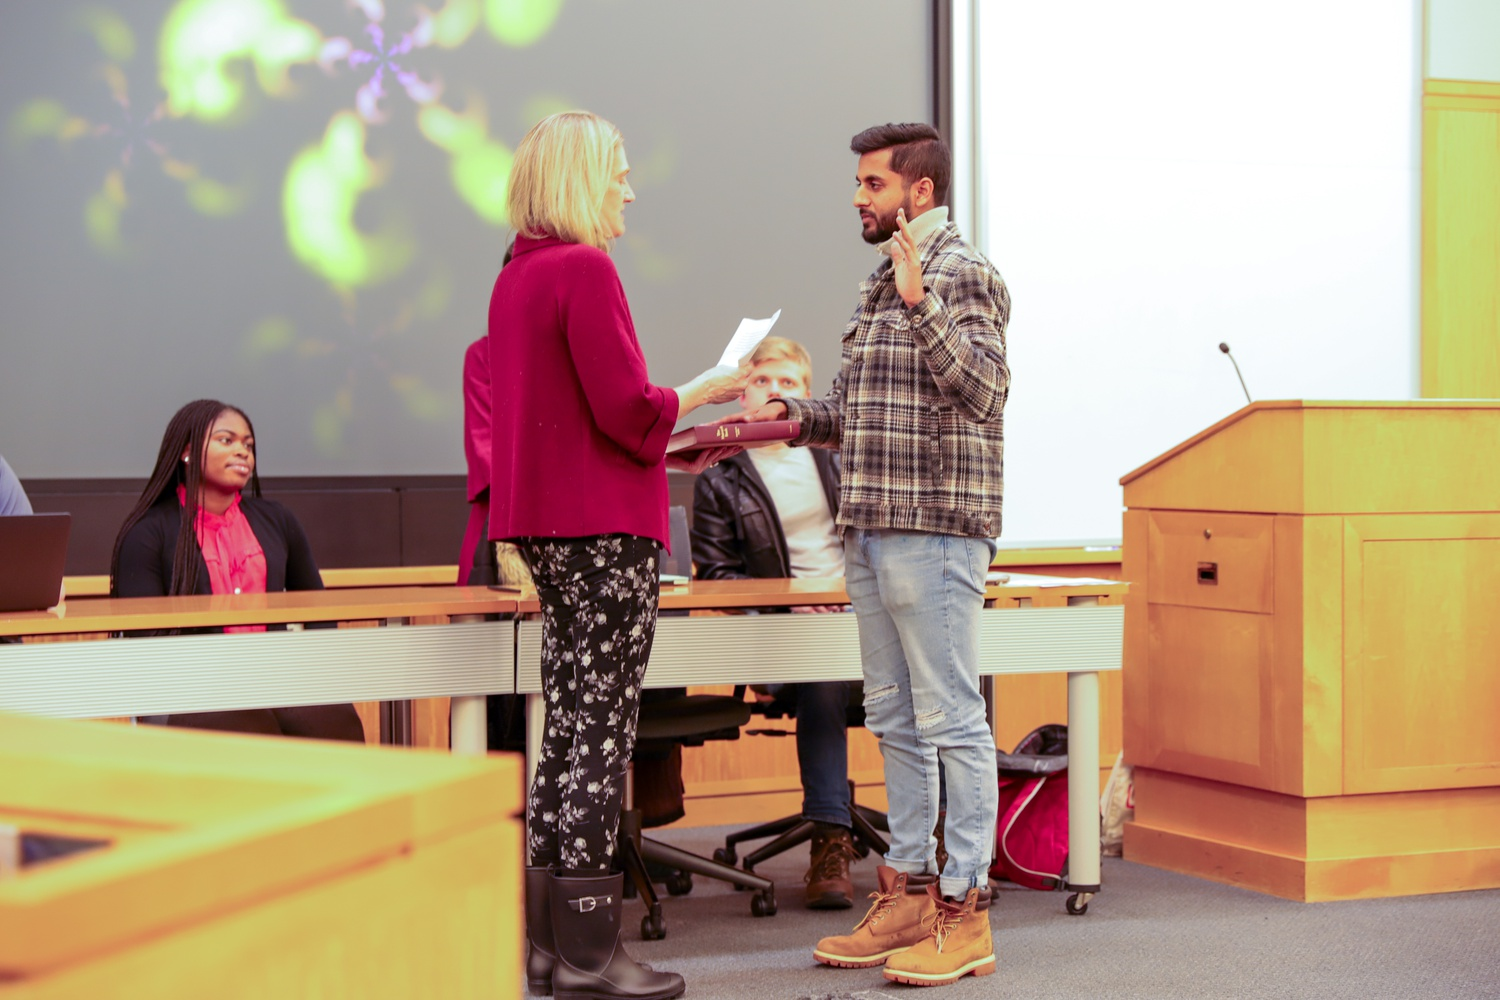 At a ceremony in December 2019, the incoming Undergraduate Council president, James A. Mathew '21, was formally inducted at the inauguration ceremony by Dean of Students Katherine G. O'Dair.